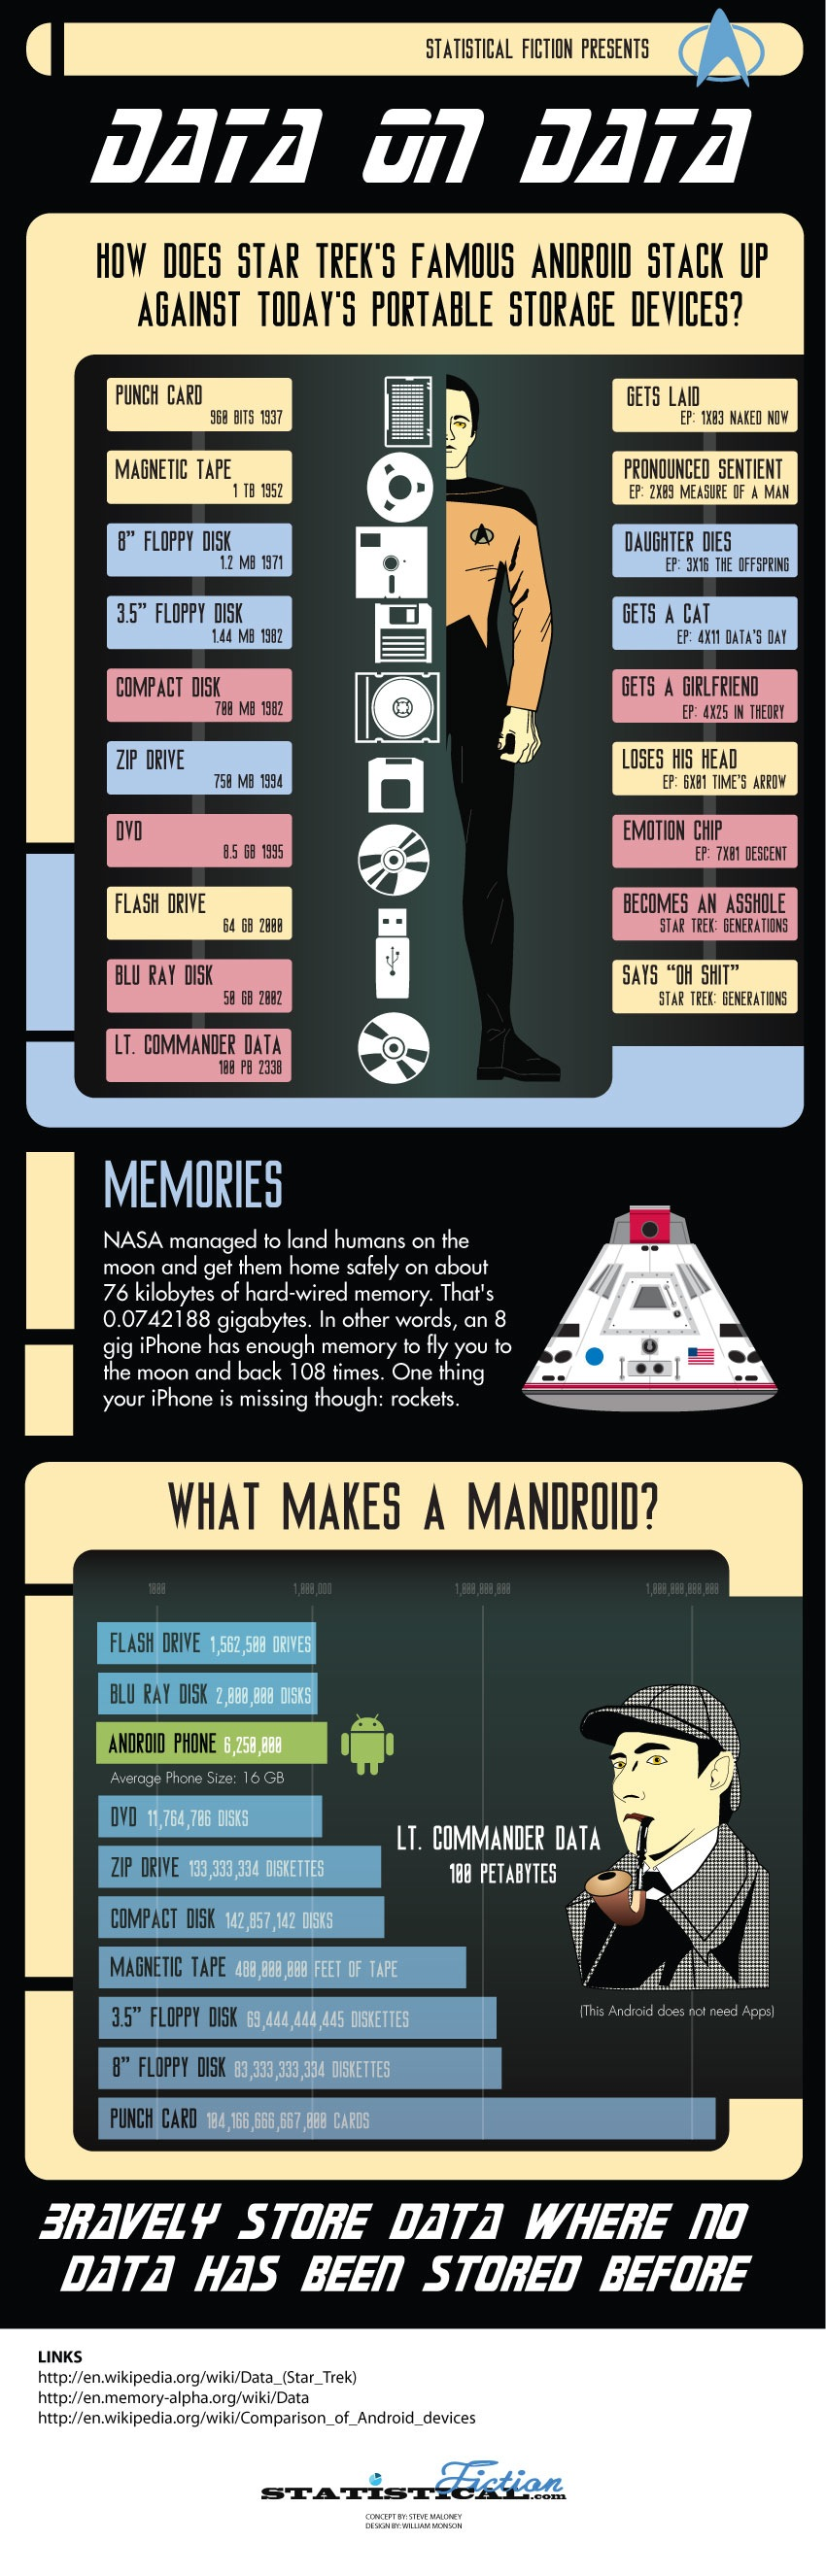 Data On Data: Star Trek's Andriod vs. Today's Portable Storage Devices